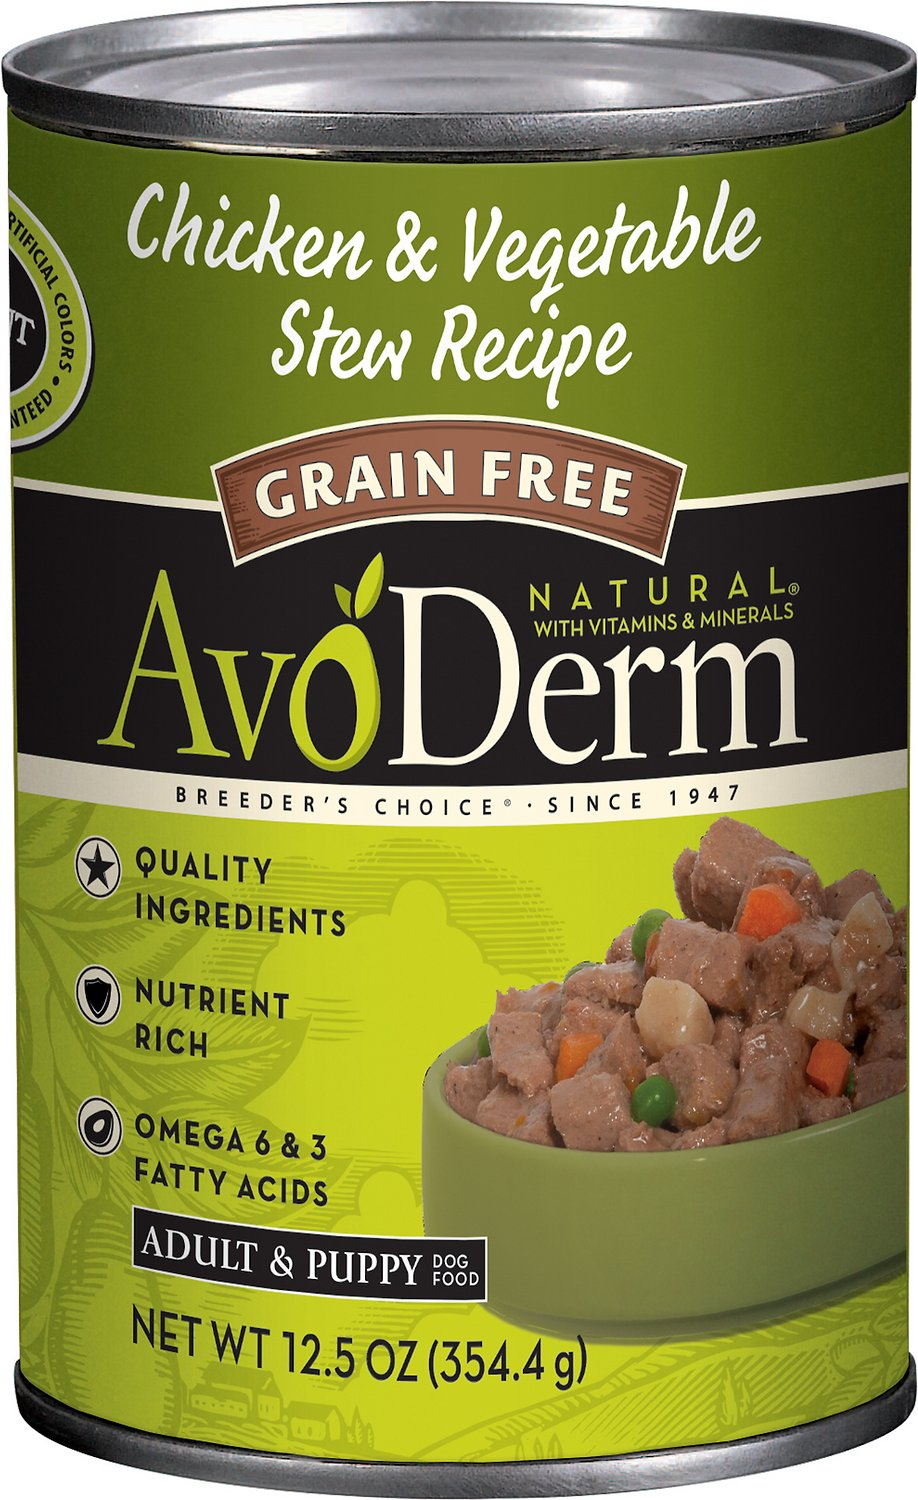 AvoDerm Natural Grain-Free Chicken & Vegetable Stew Recipe Adult & Puppy Canned Dog Food, 12.5-oz